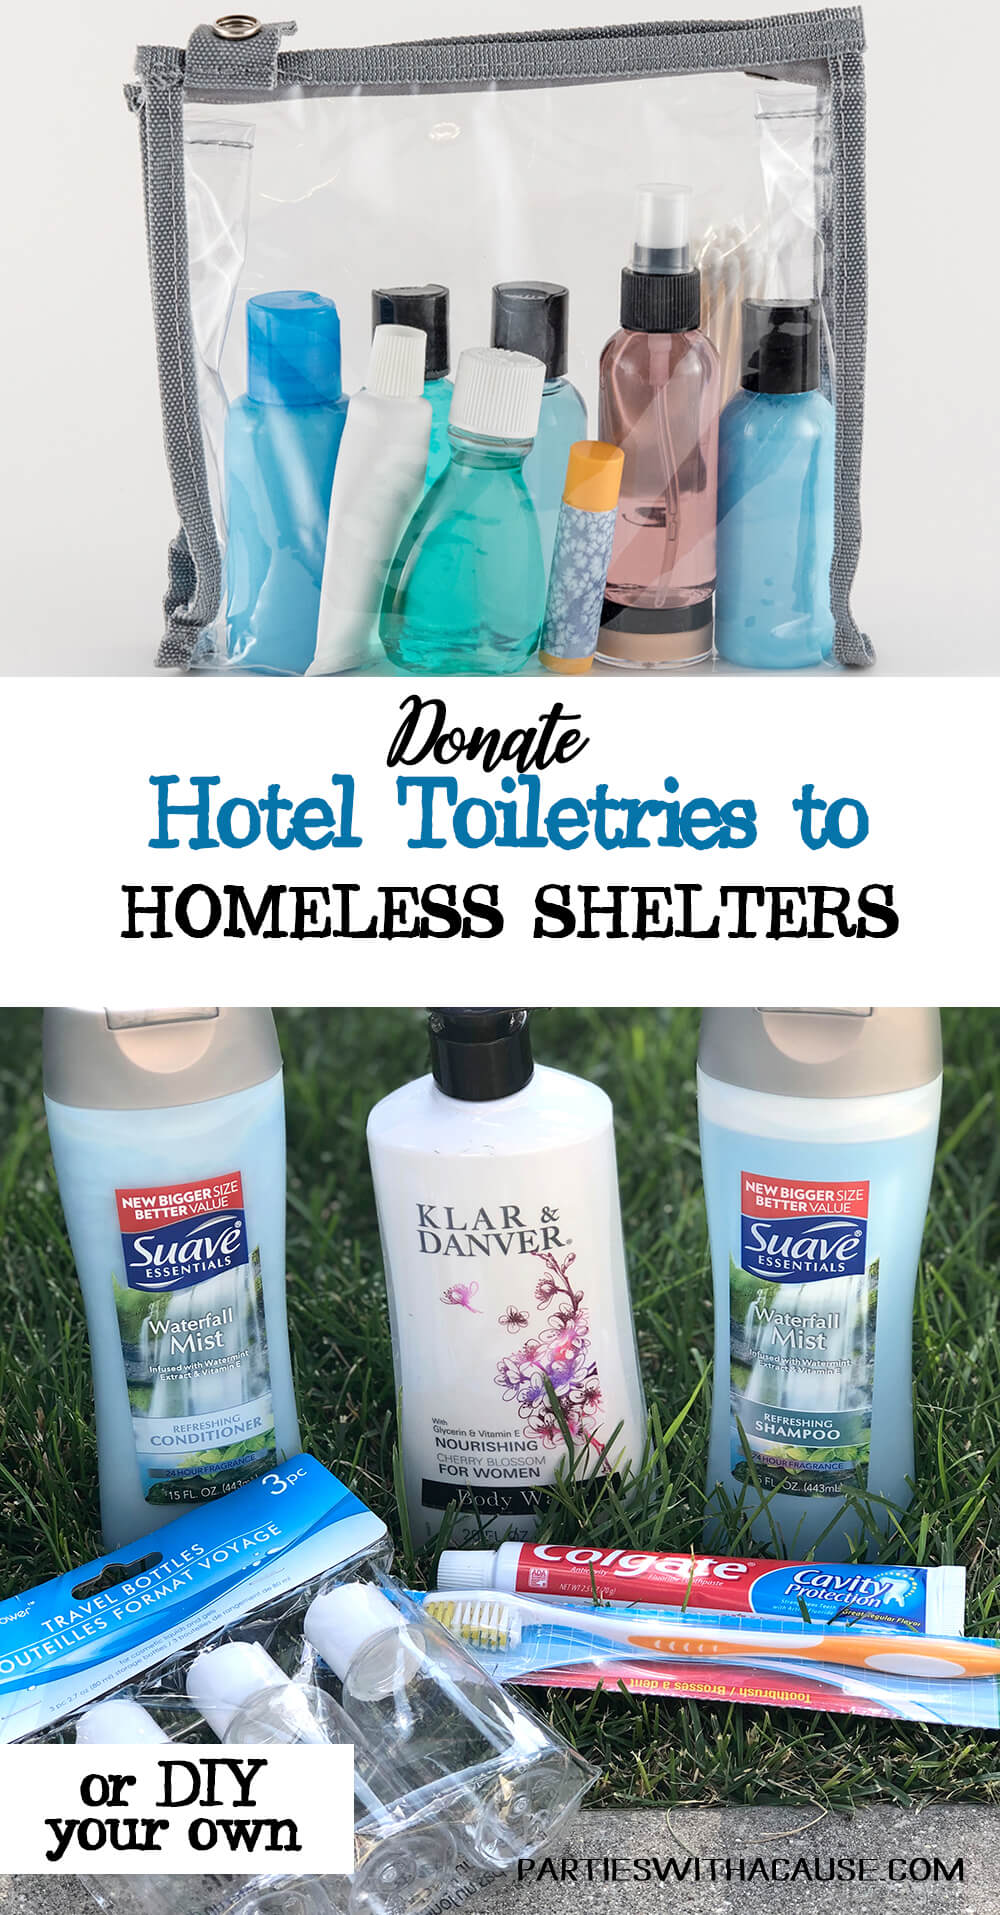 Donate unused hotel toiletries to homeless shelters